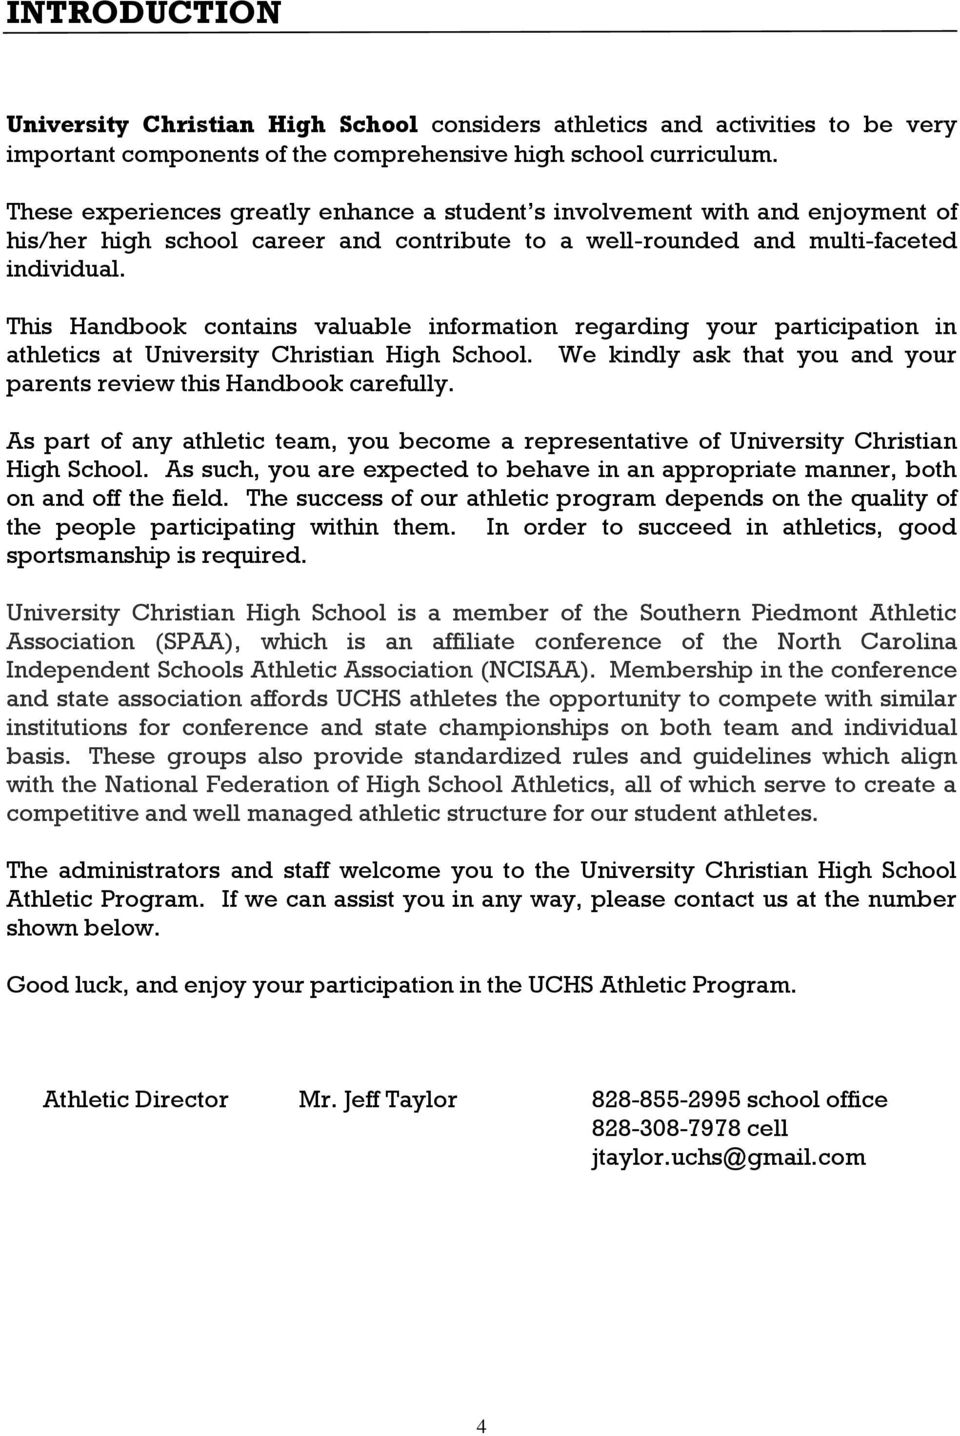 This Handbook contains valuable information regarding your participation in athletics at University Christian High School. We kindly ask that you and your parents review this Handbook carefully.